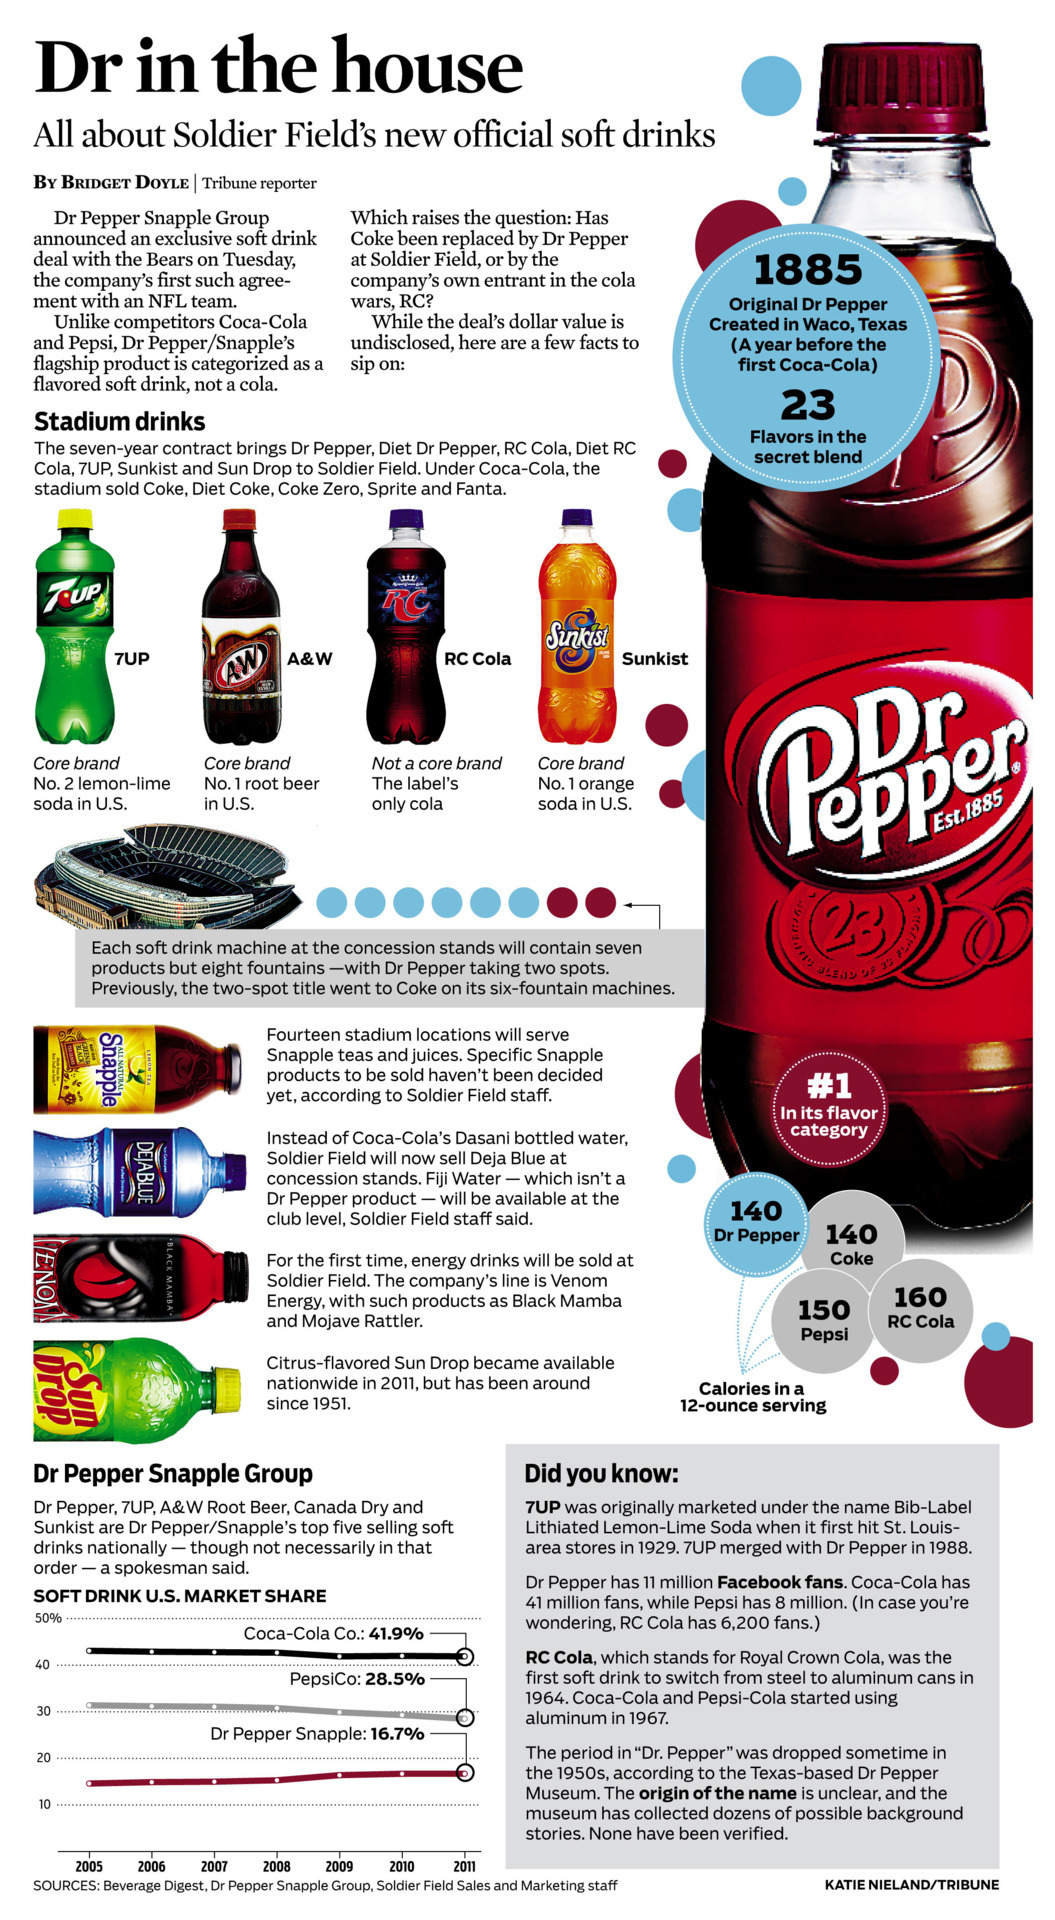 Graphic: Dr Pepper is the new soft drink for Bears stadium